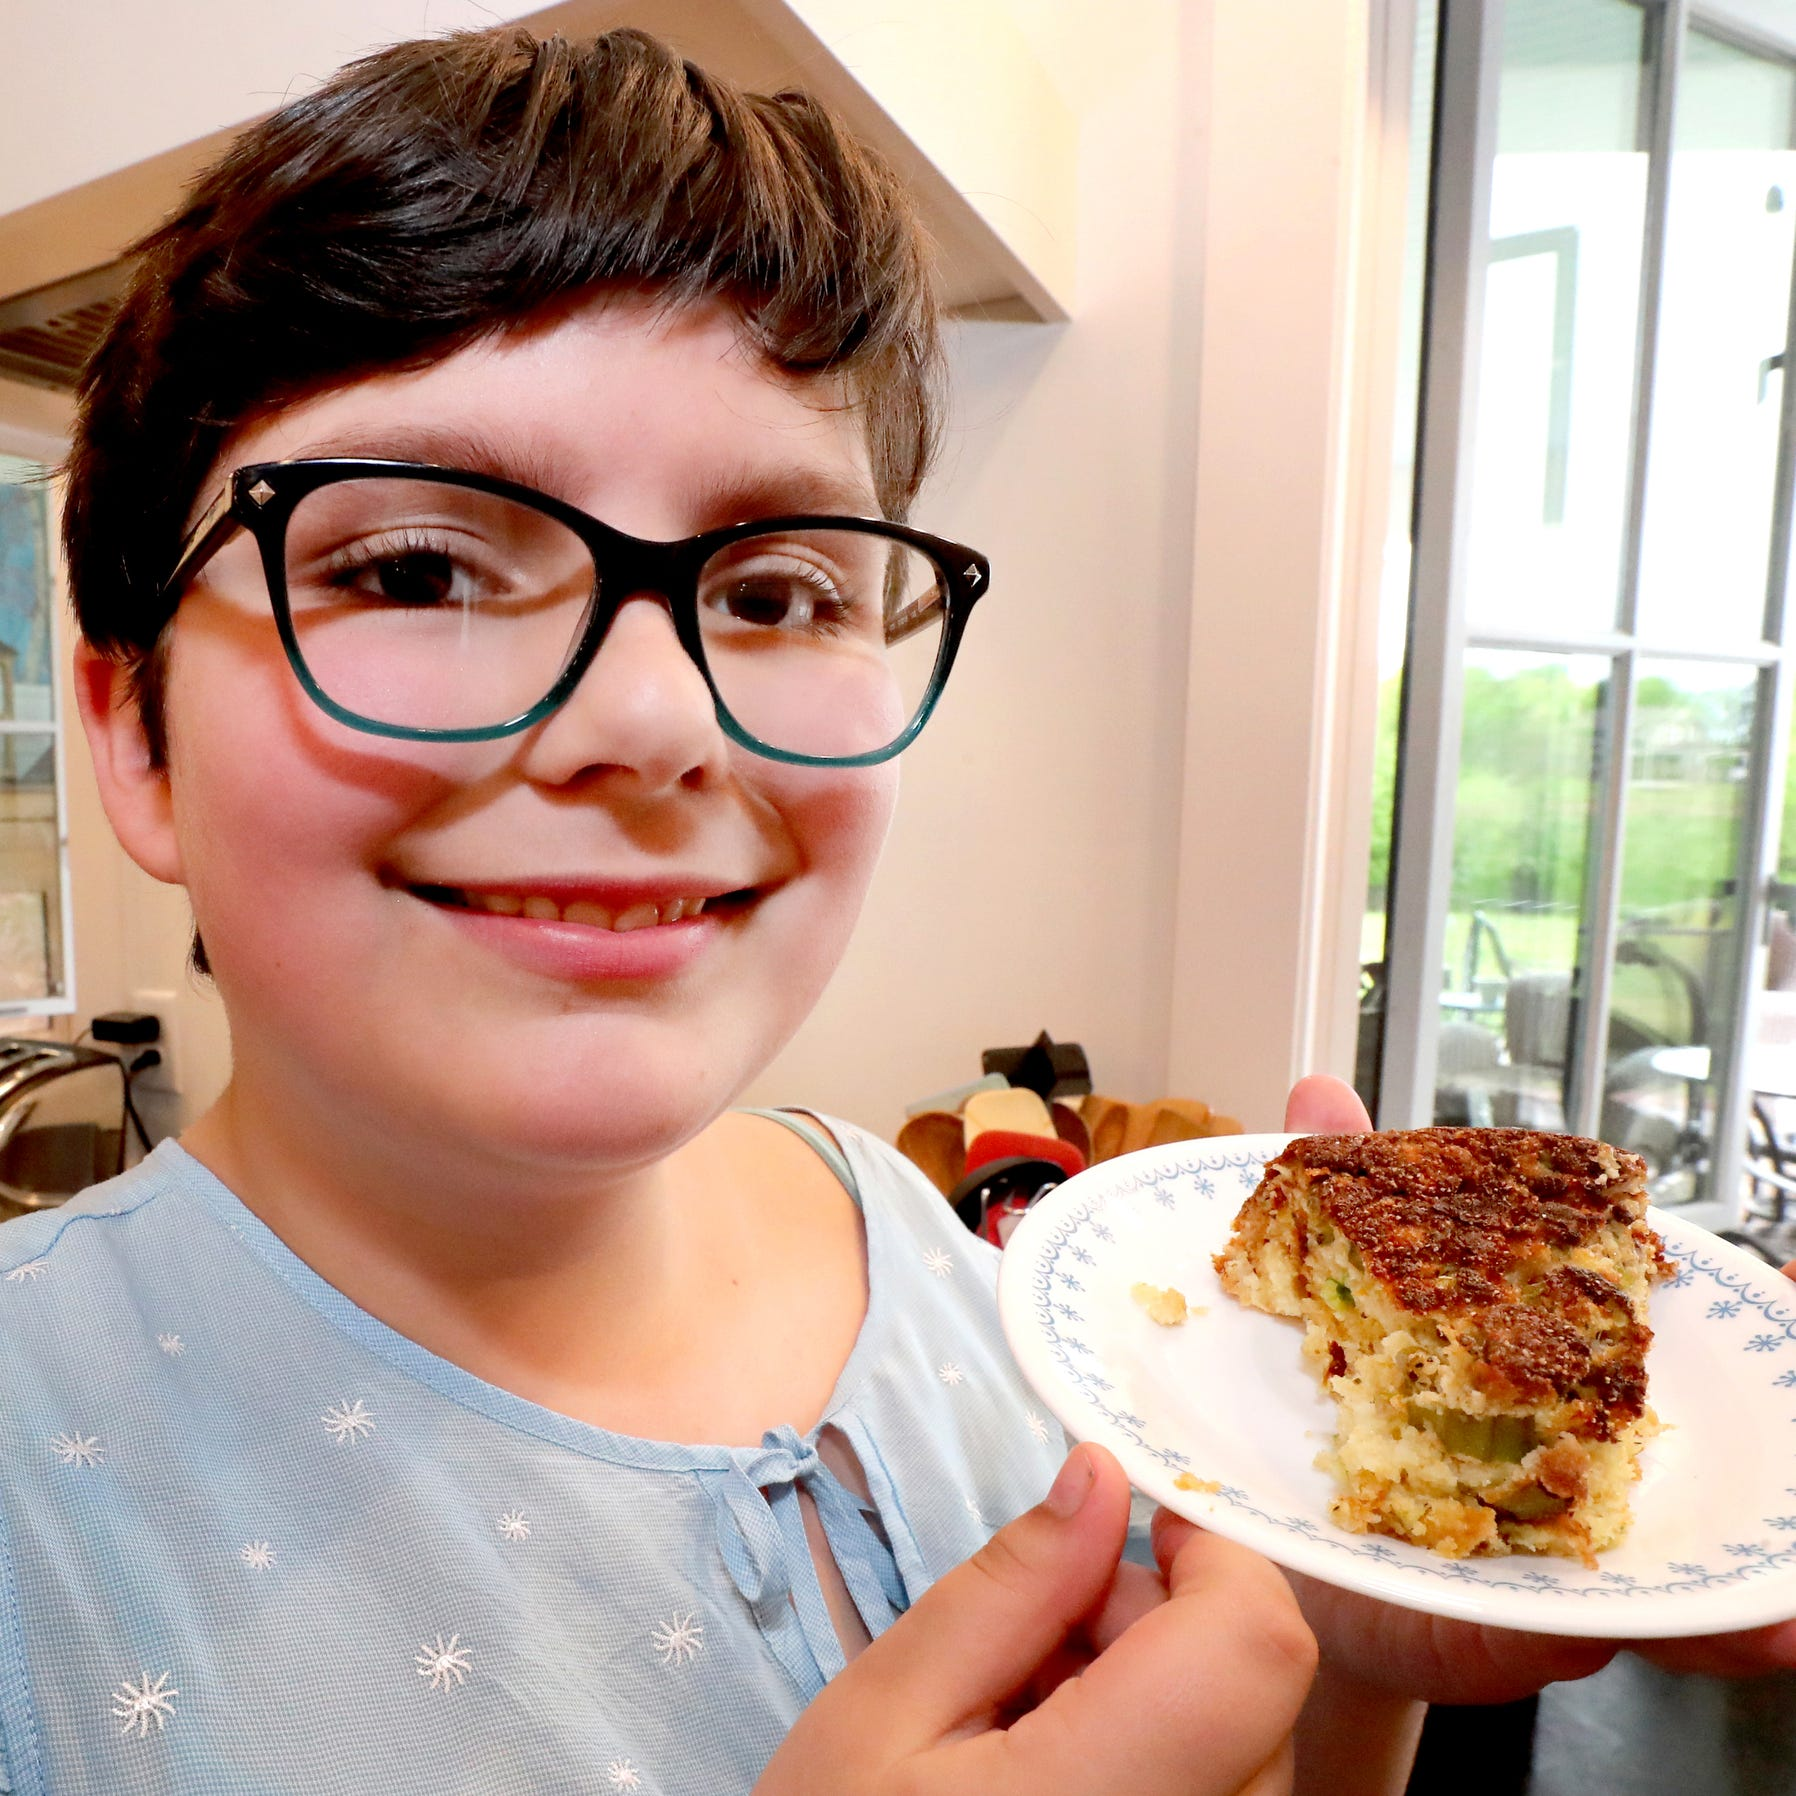 Eagleville student vies for first prize at National Cornbread Festival